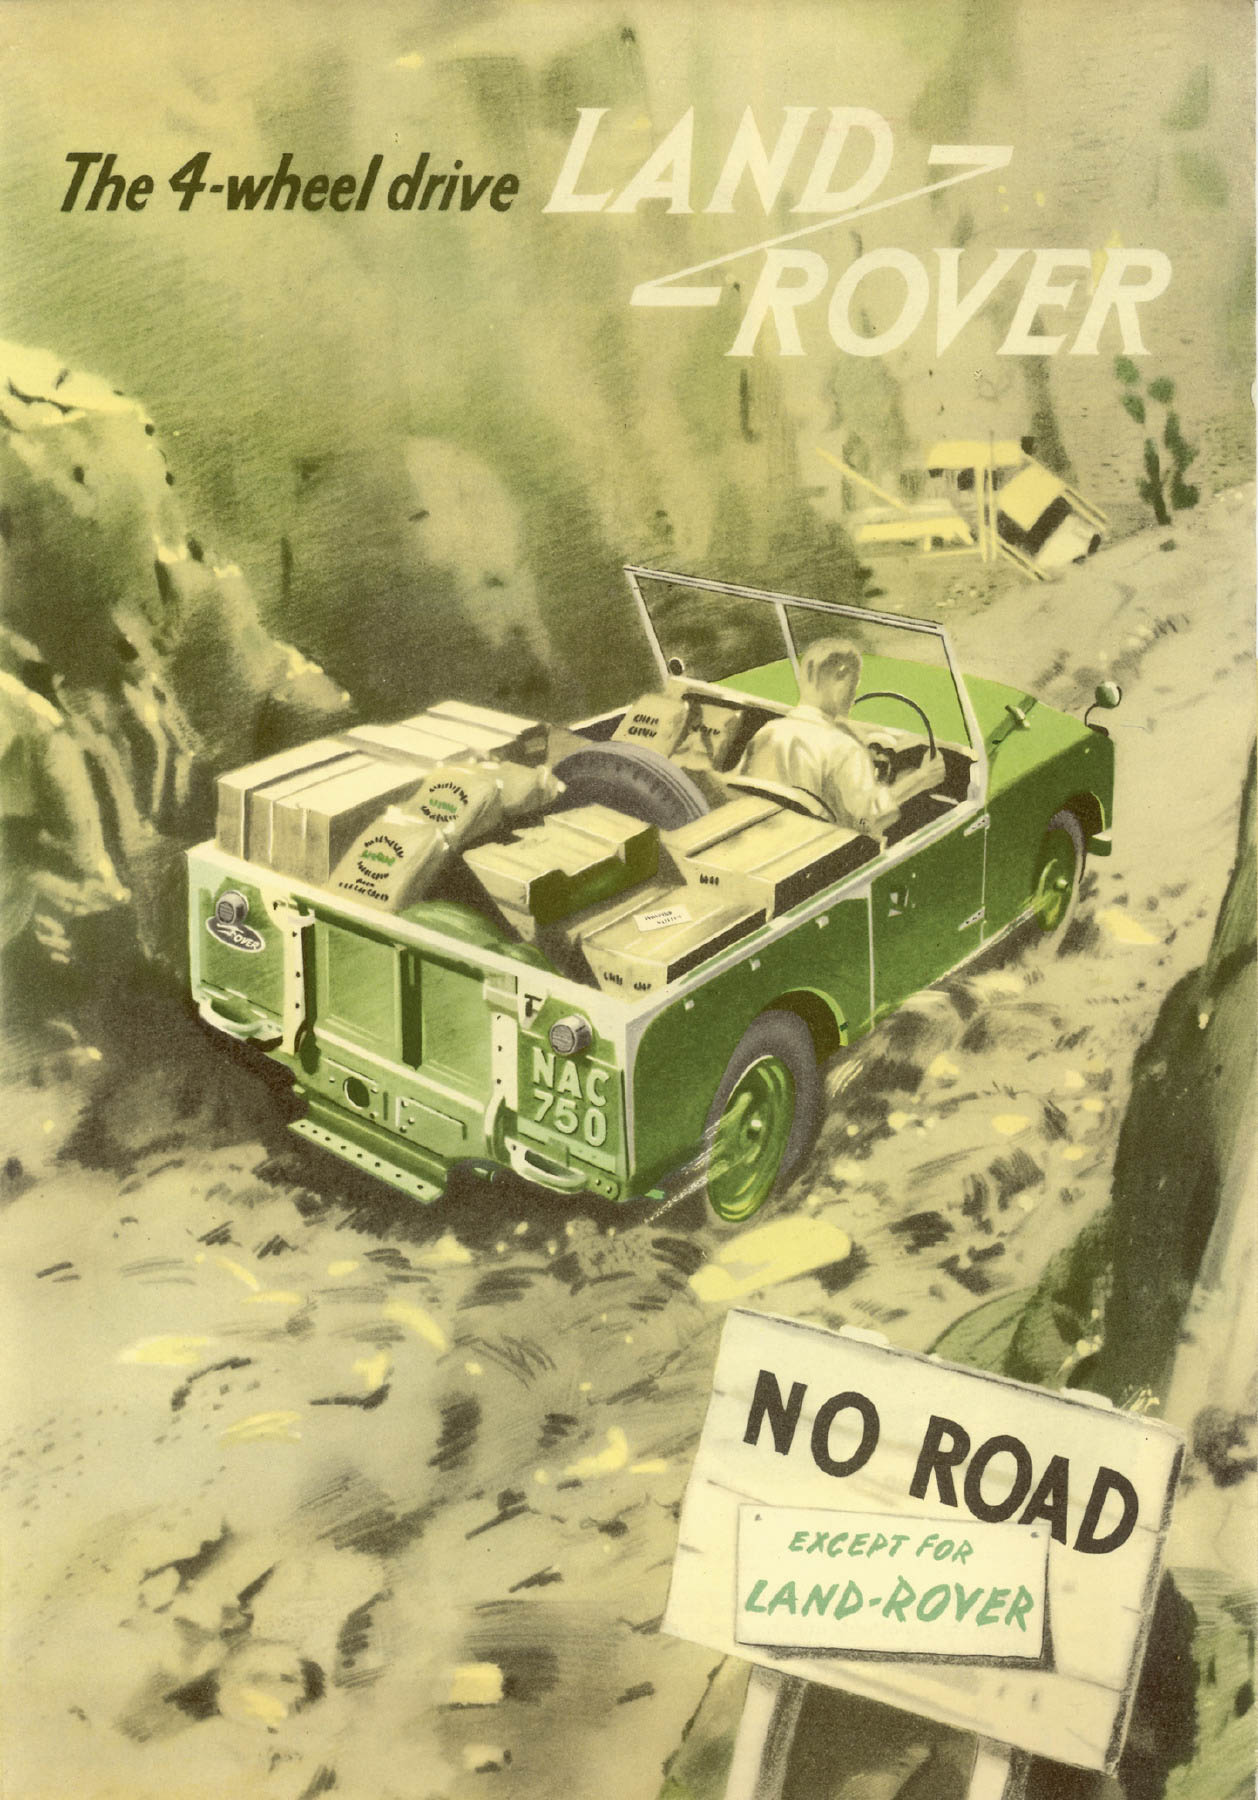 classic Land Rover ad from 1954